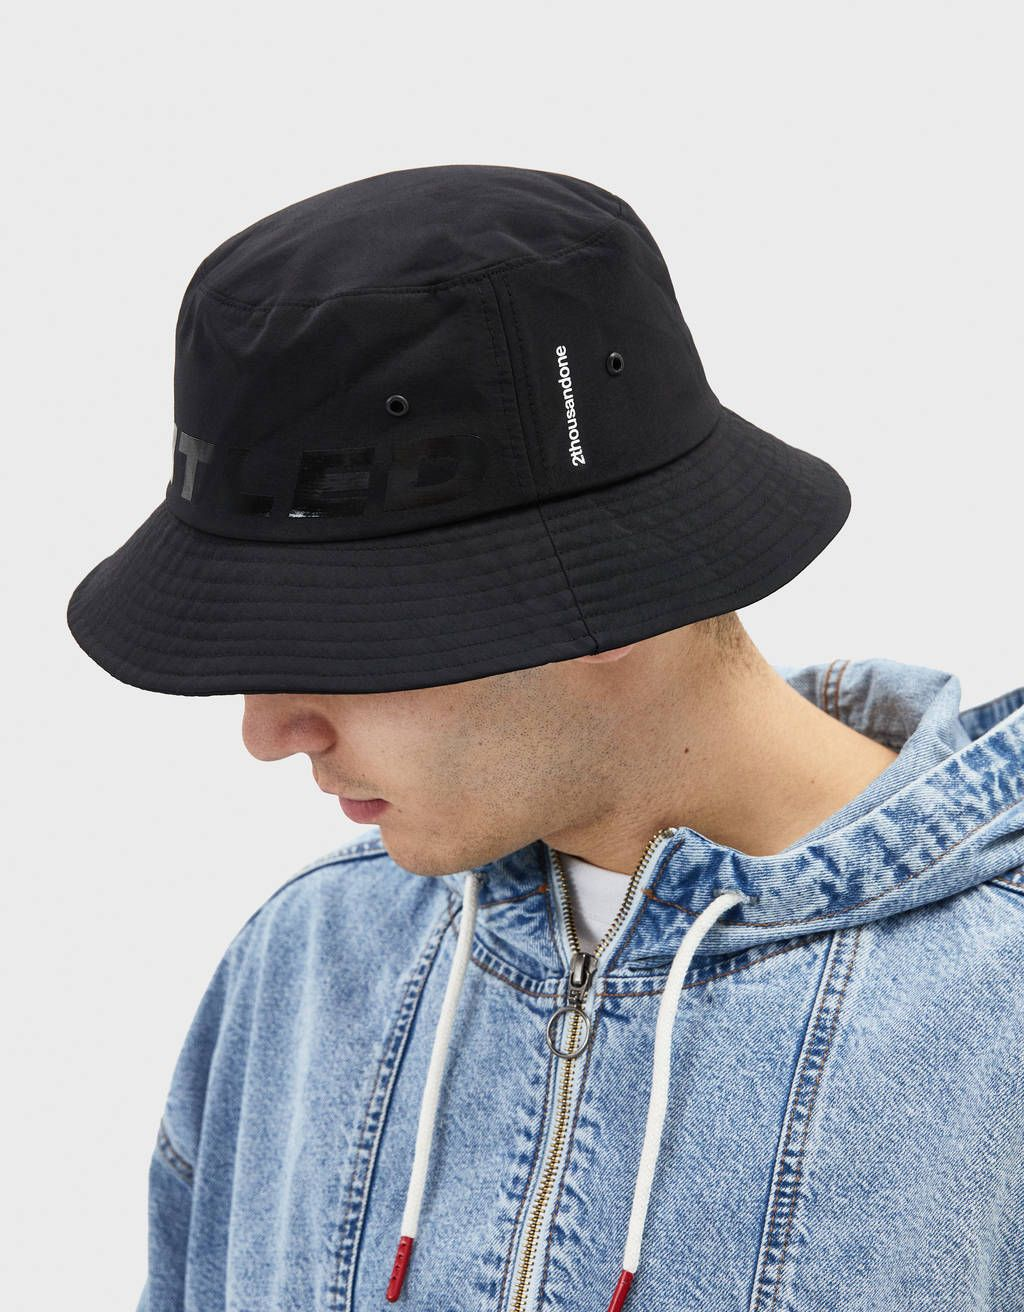 Bershka Bucket Hat Bershka Bershkacollection Newin New Clothes Outfits Outfit Ideas Inspo Inspiration Cool Look Details Women Outfits Bucket Hat